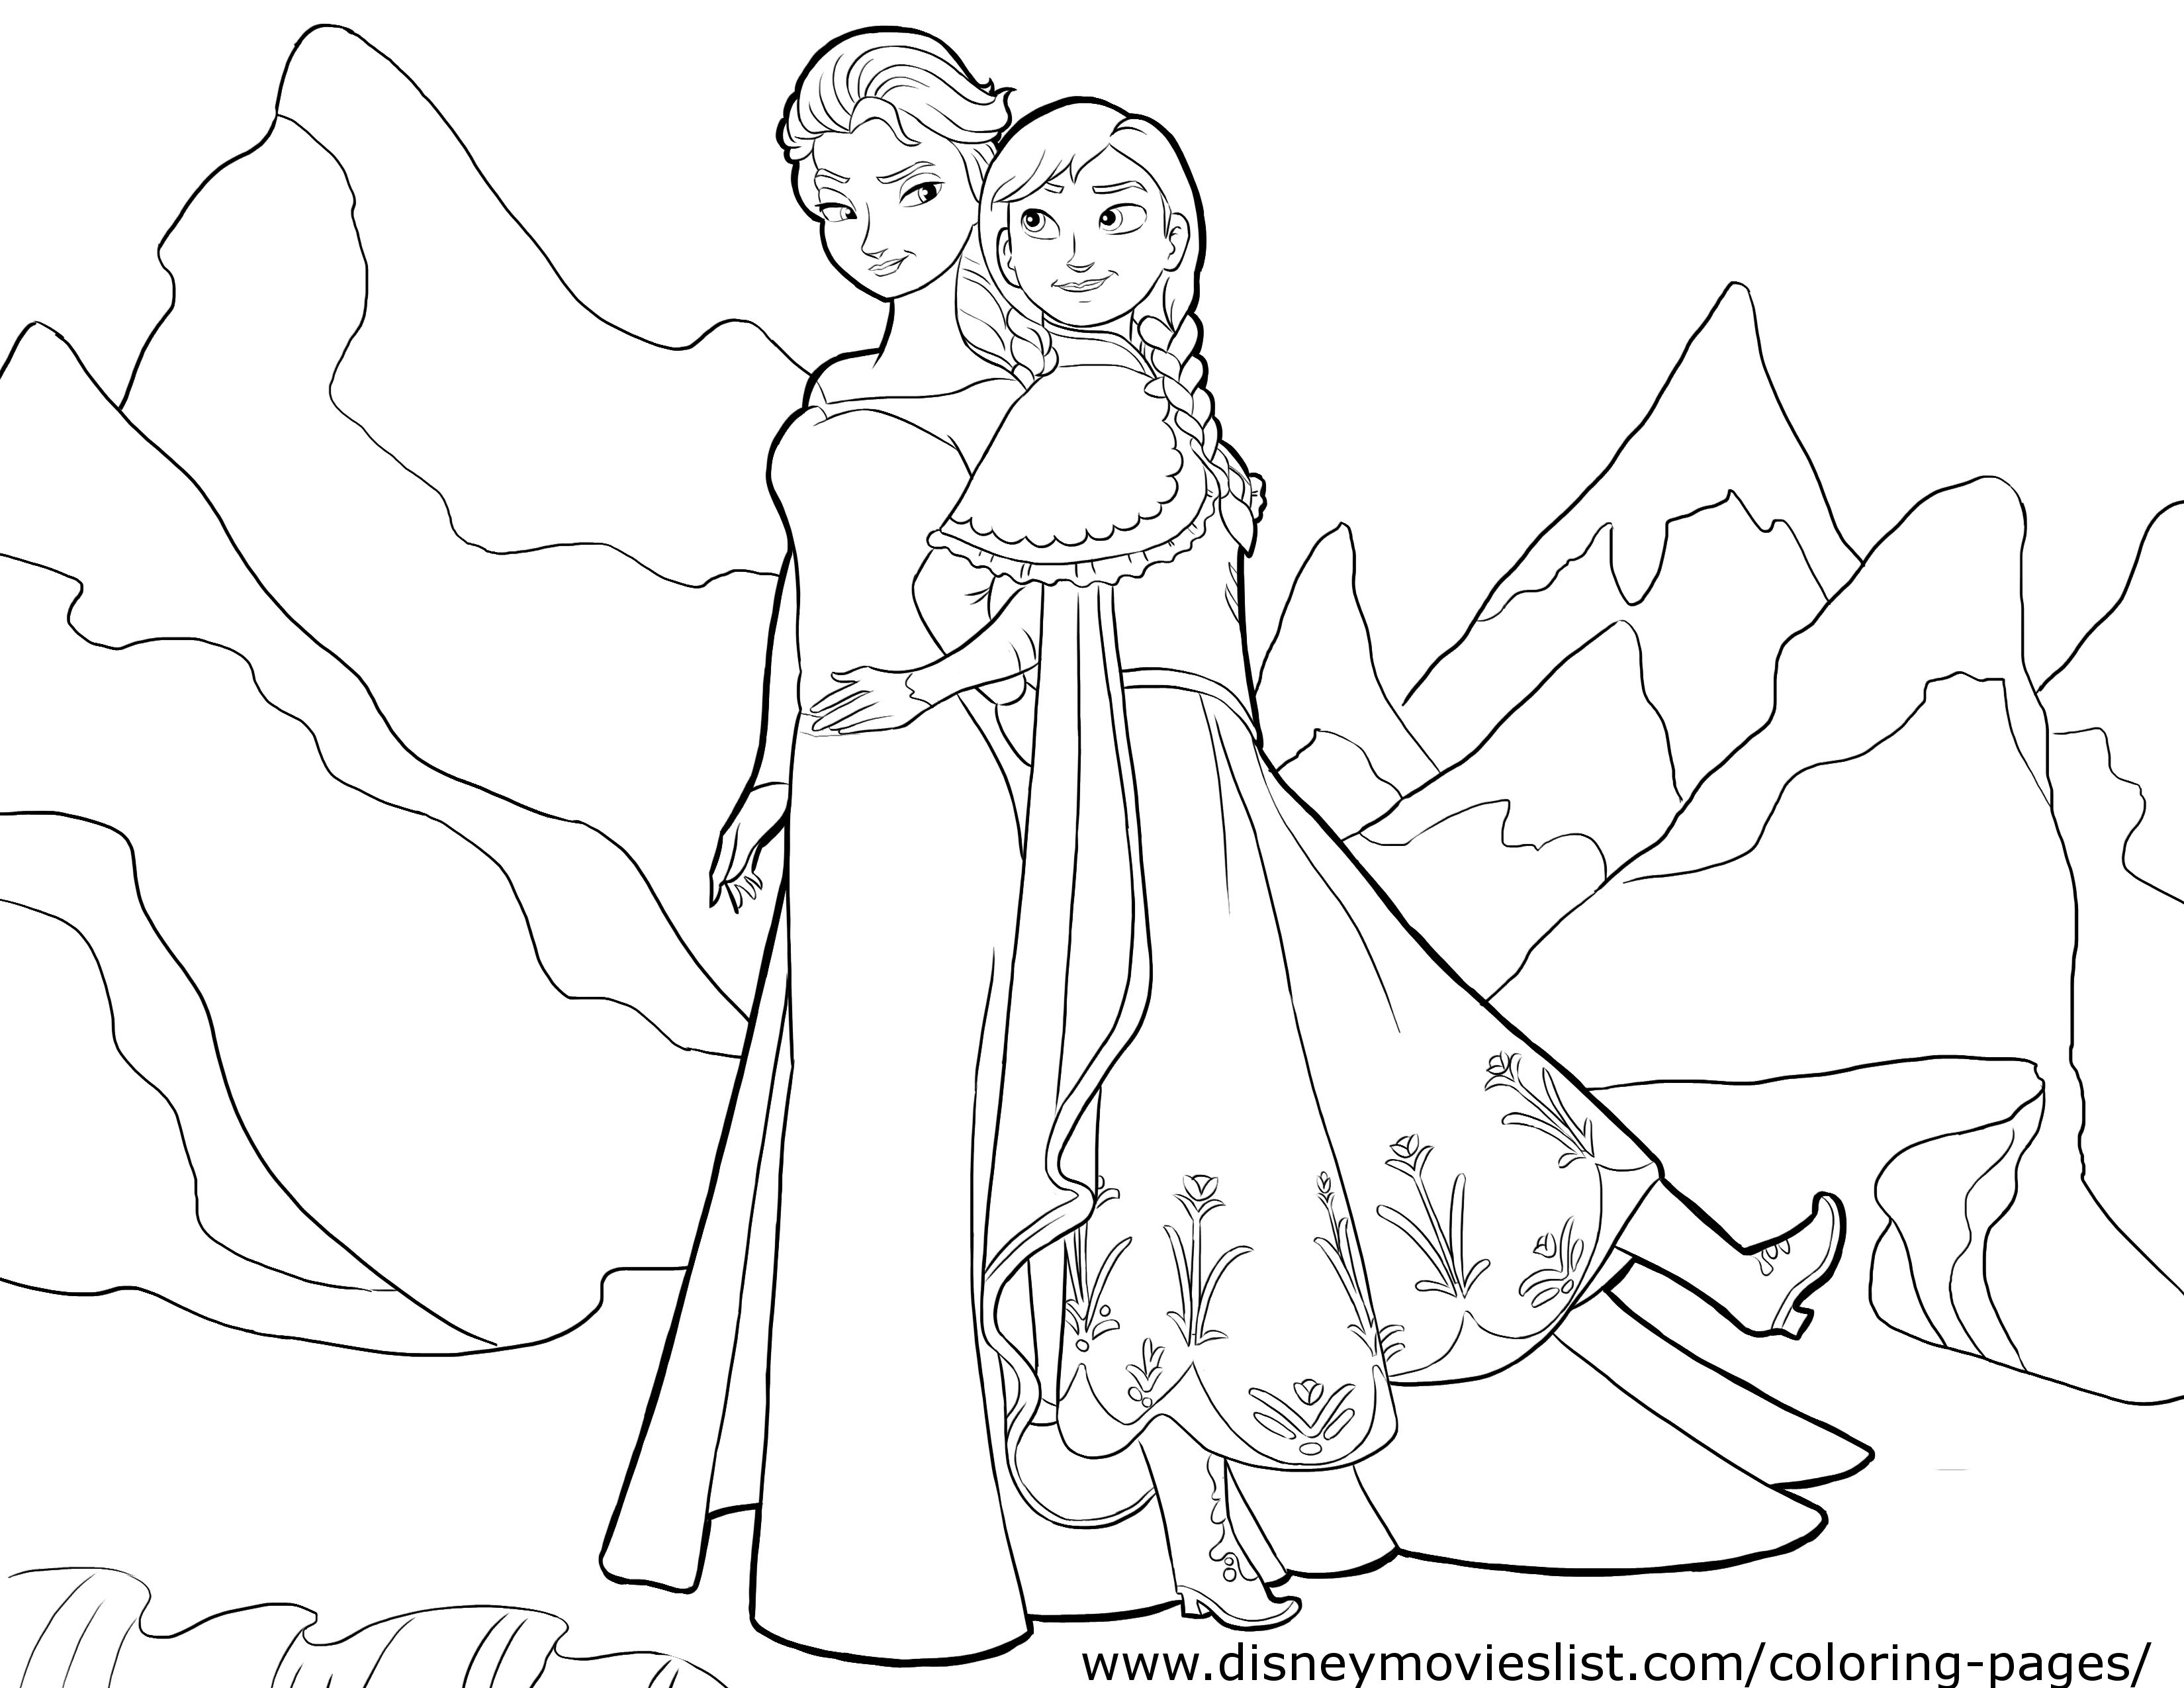 frozen elsa anna coloring page - Frozen Elsa And Anna Coloring Pages